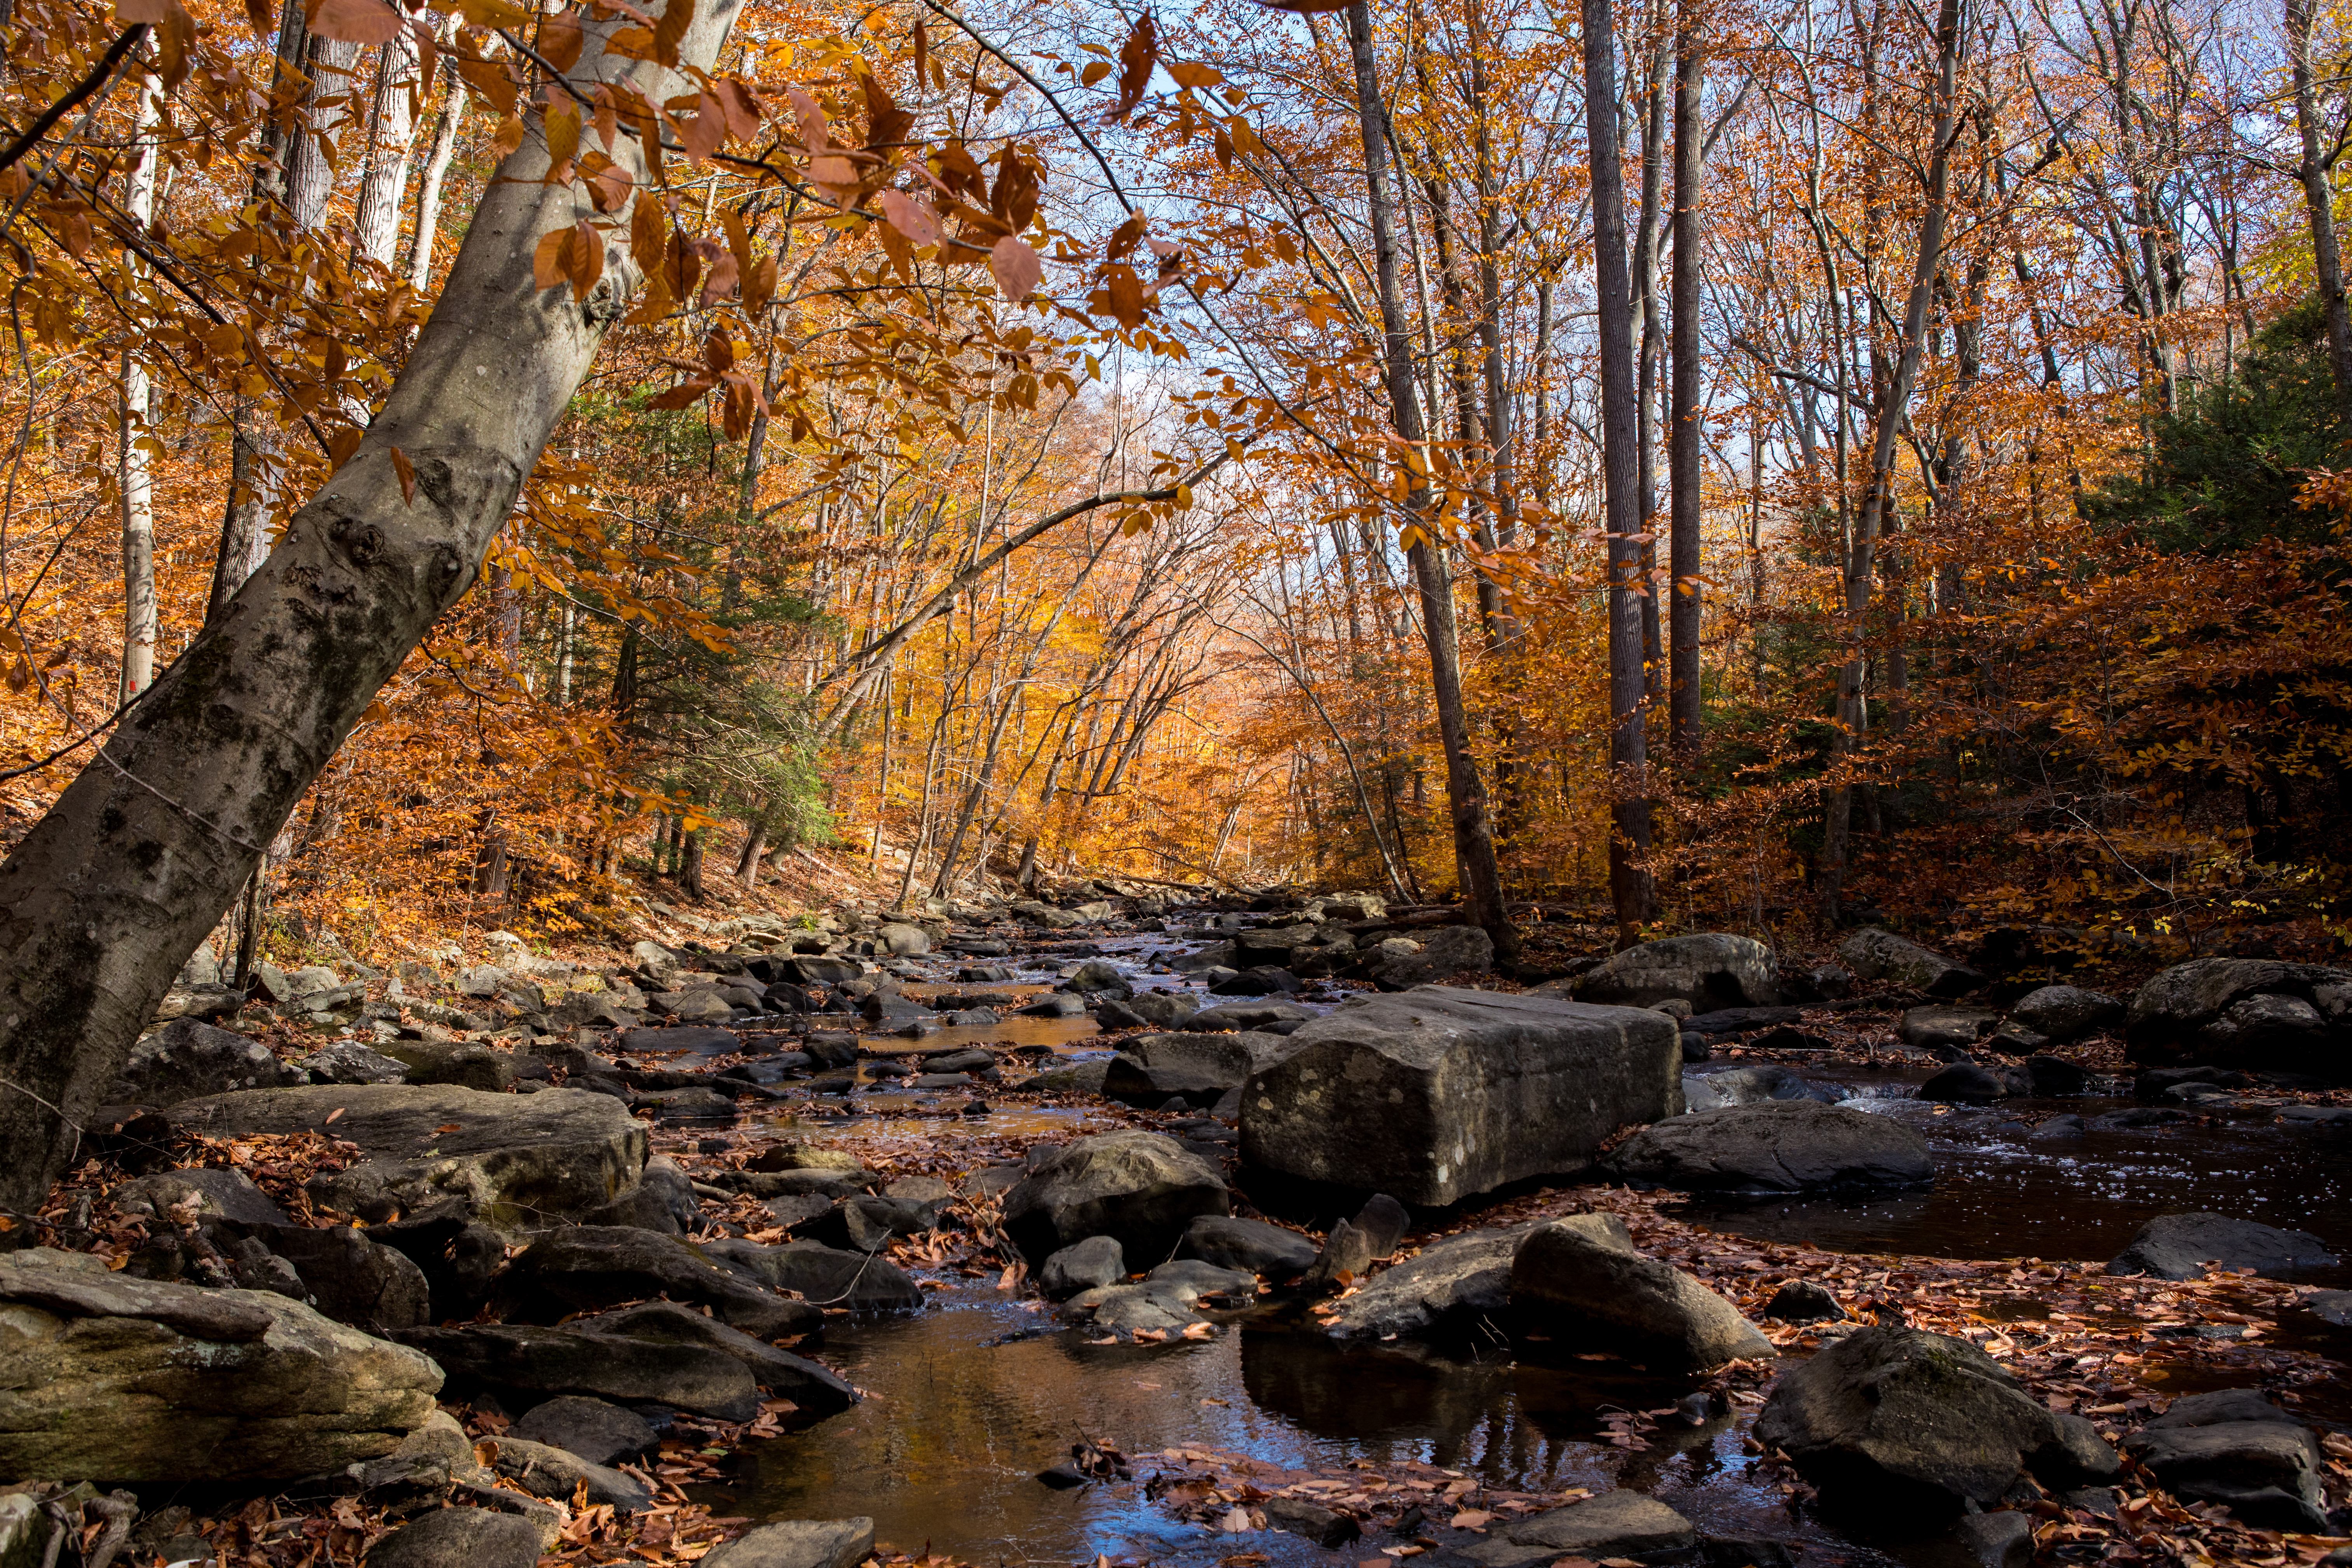 118814 download wallpaper Nature, Rivers, Stones, Autumn, Creek, Brook screensavers and pictures for free